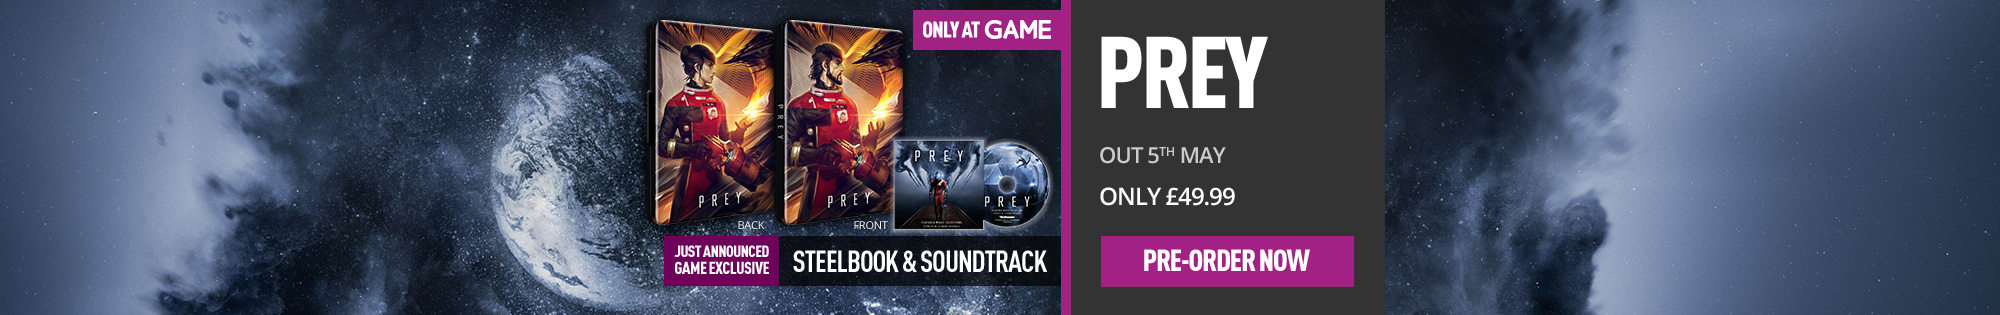 Prey with Only at GAME Steelbook and Soundtrack at GAME.co.uk